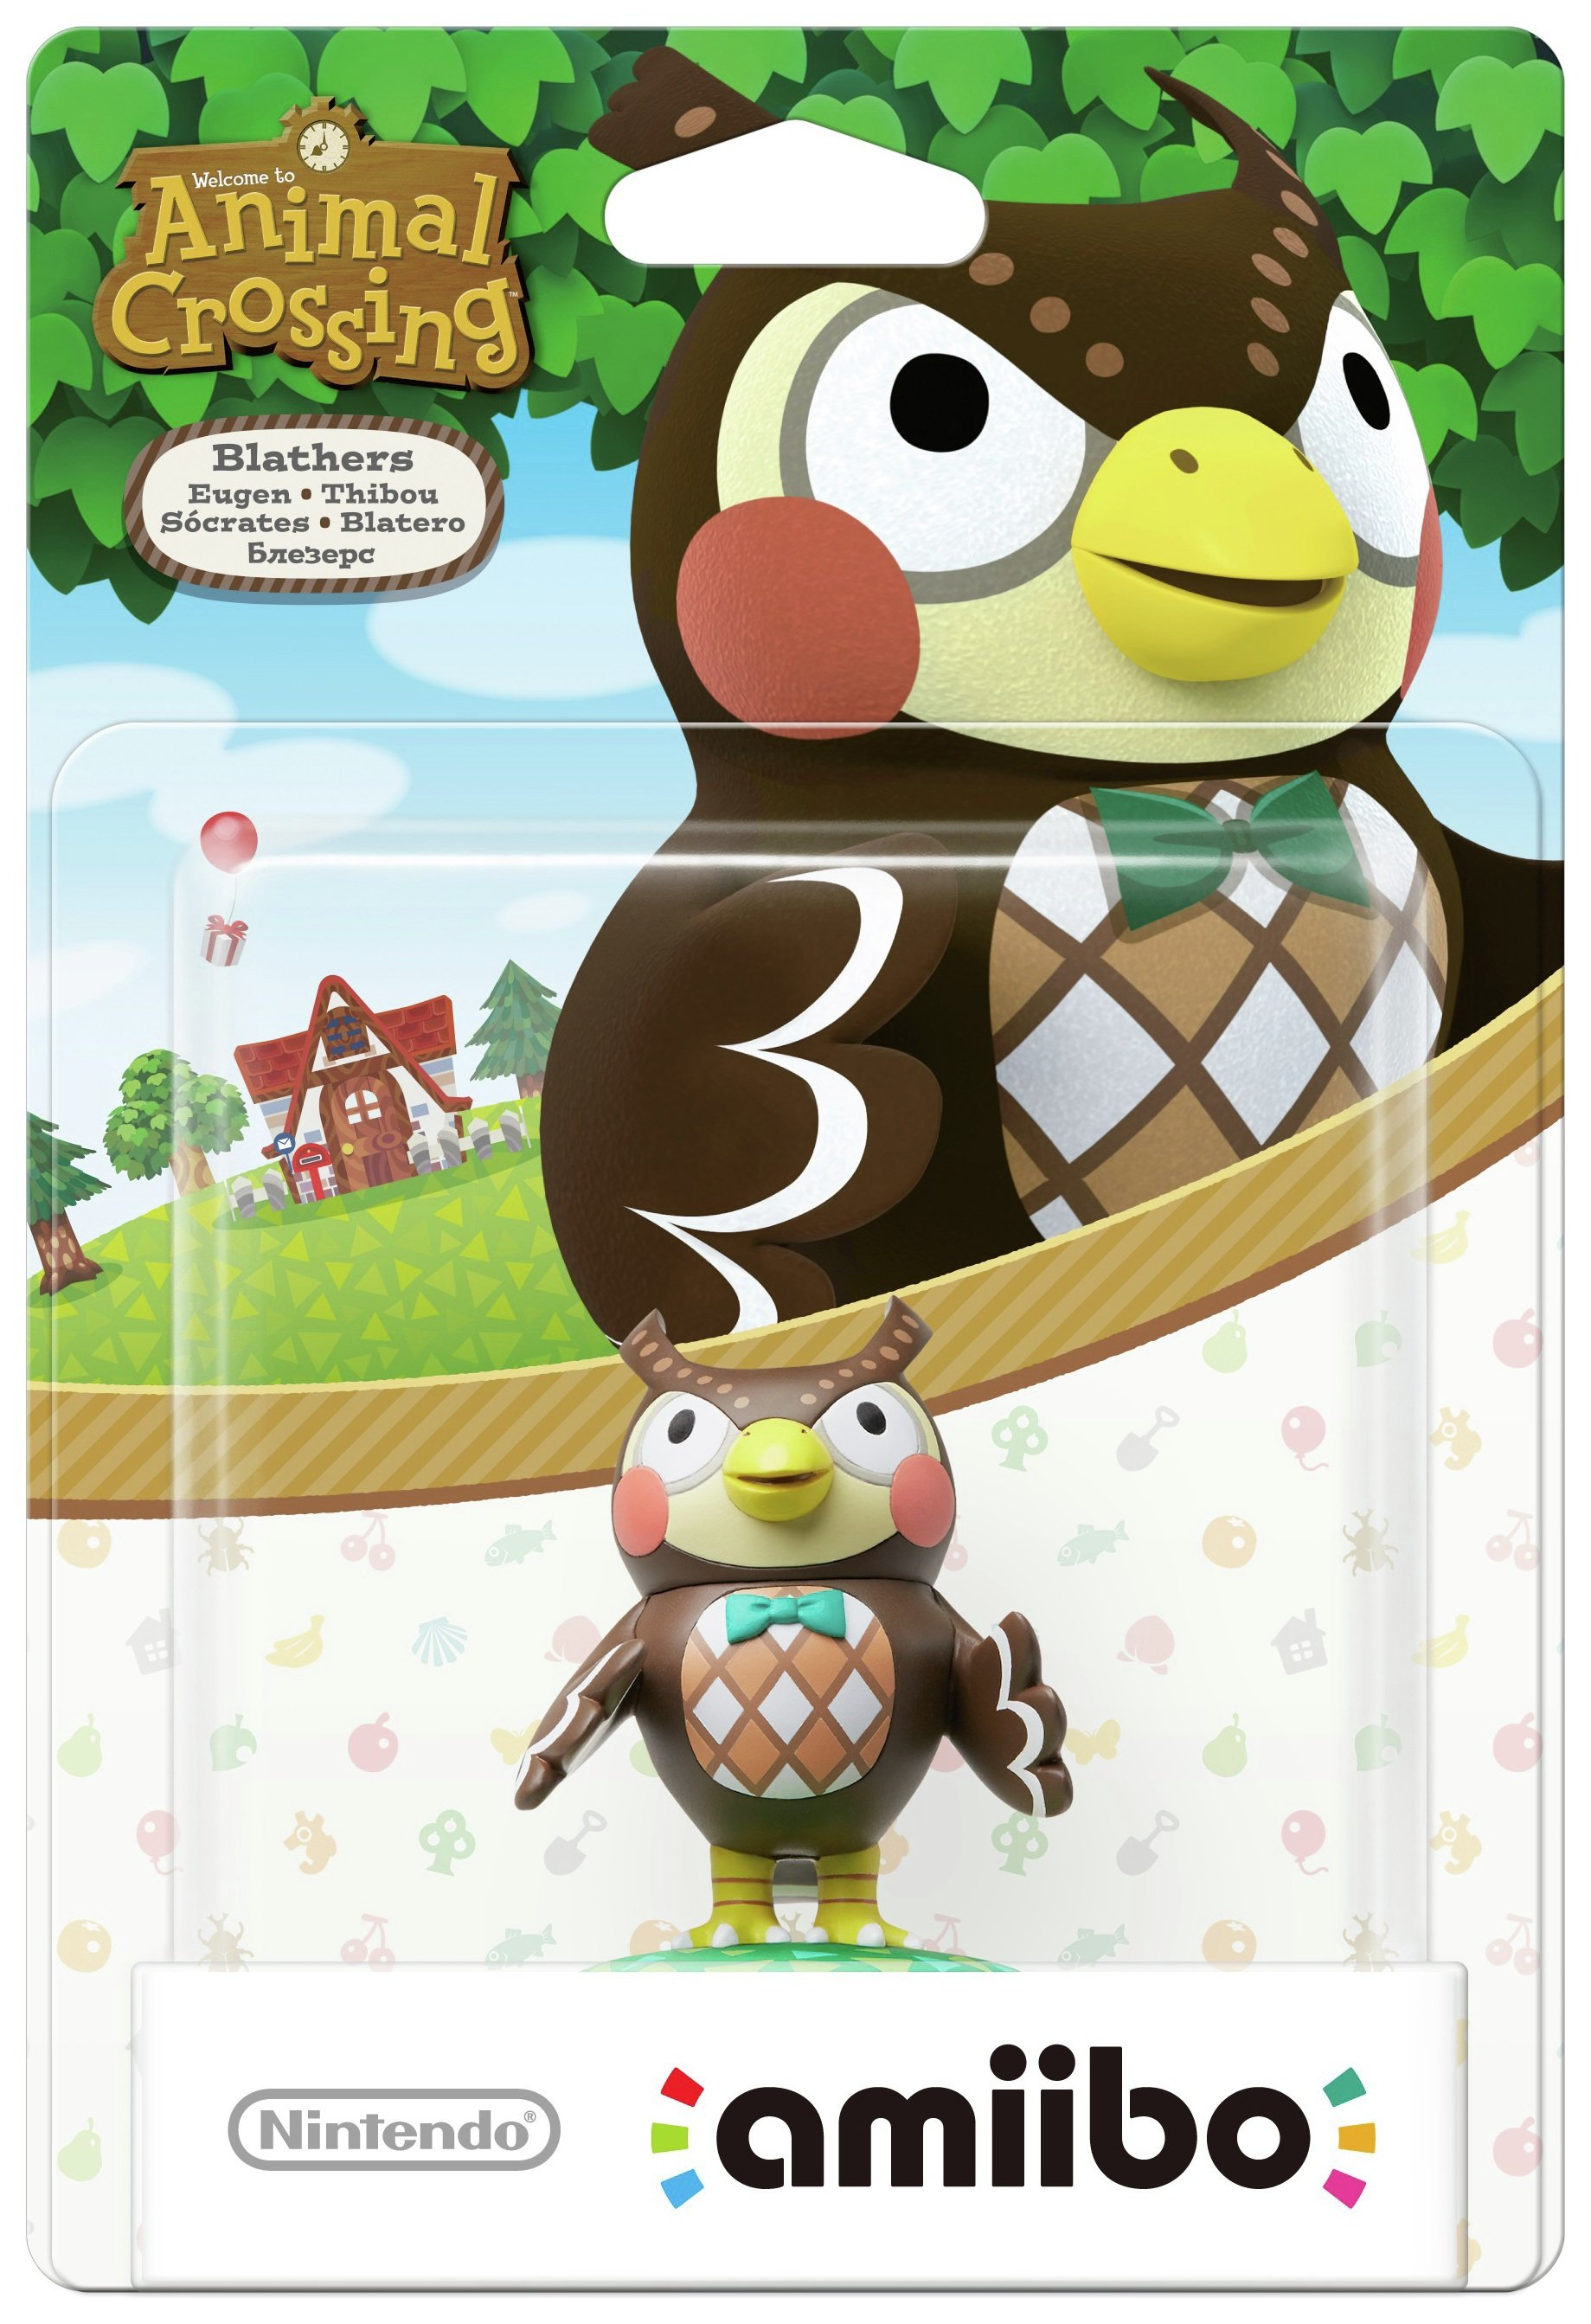 Image of amiibo Animal Crossing - Blathers.